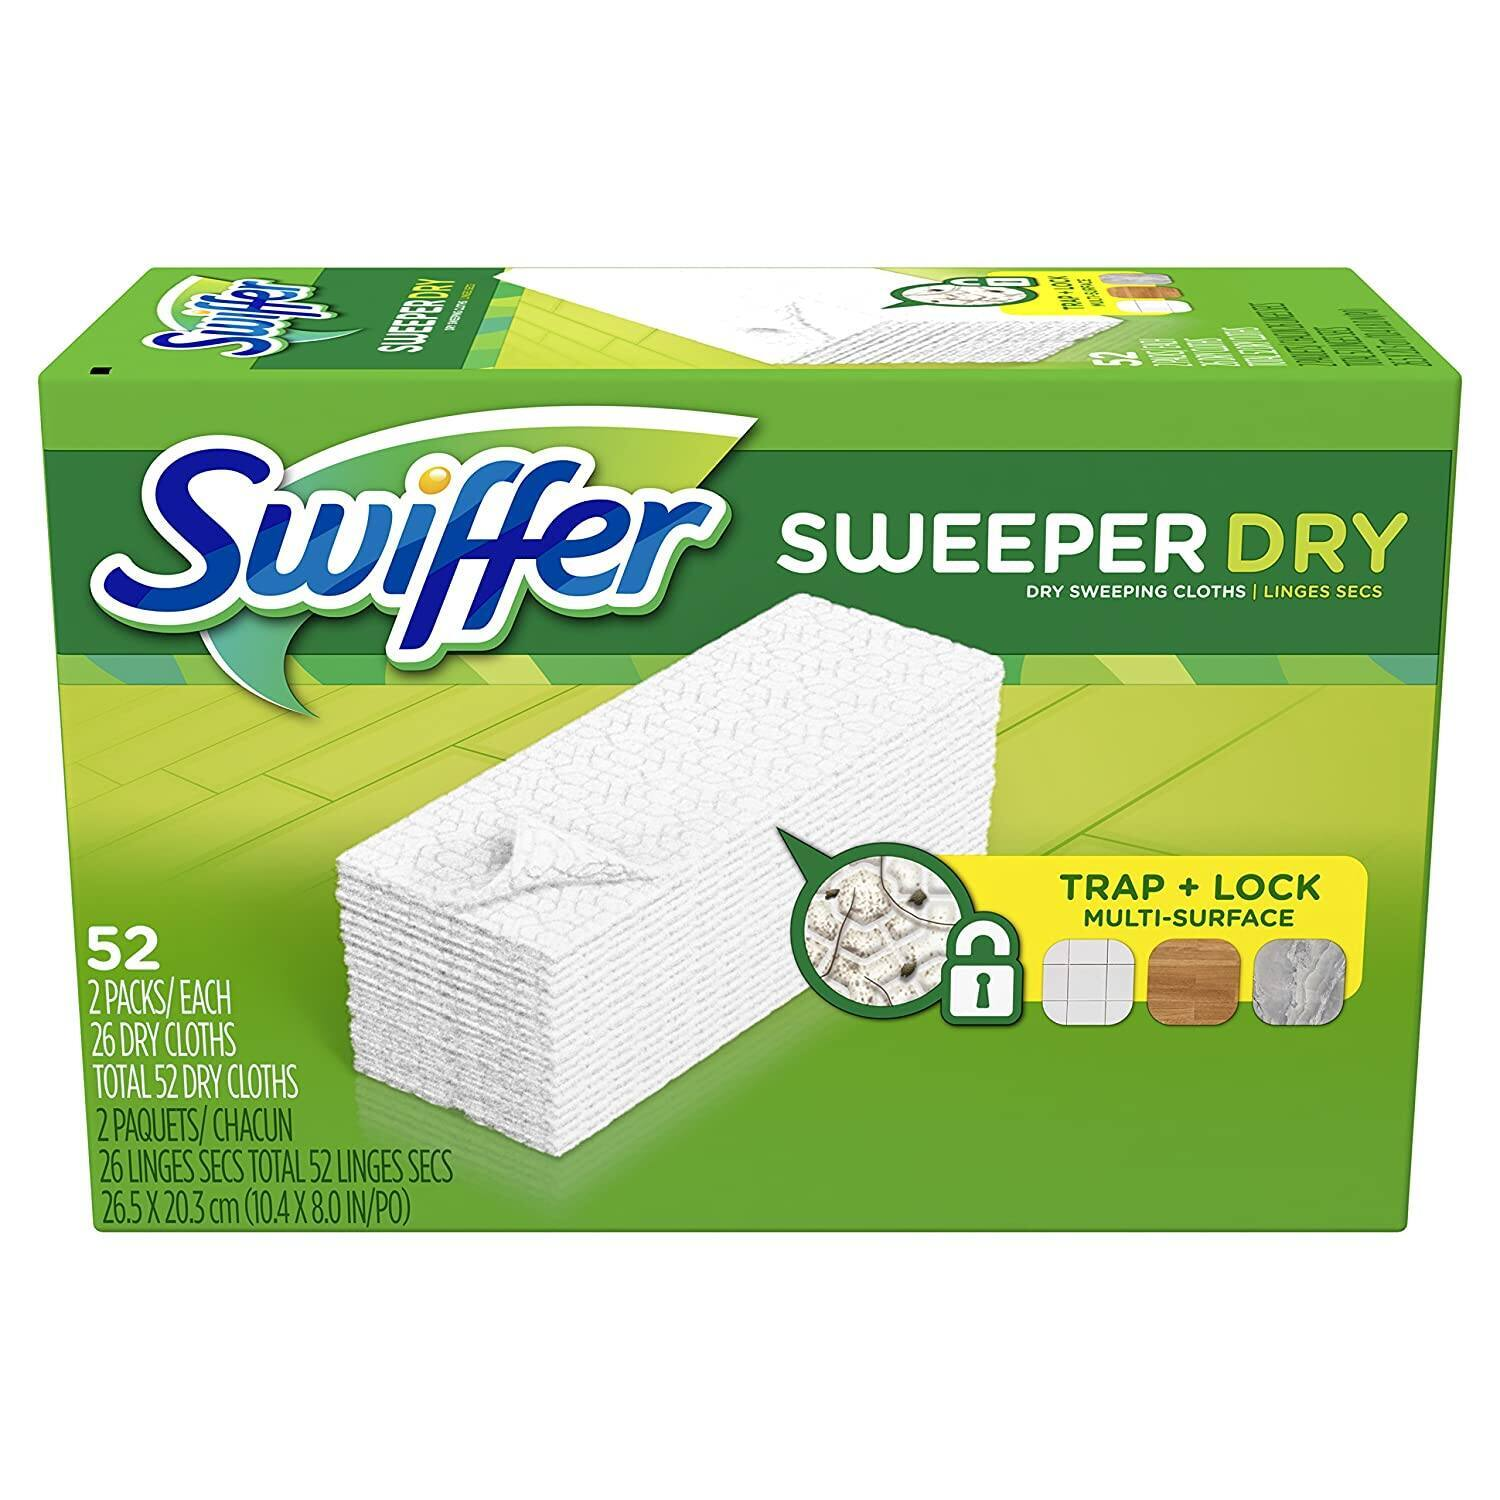 52-Count Swiffer Sweeper Dry Mop Sweeping Refill Pads 3 for $25.91 ($8.64 each) + Free Shiping & More